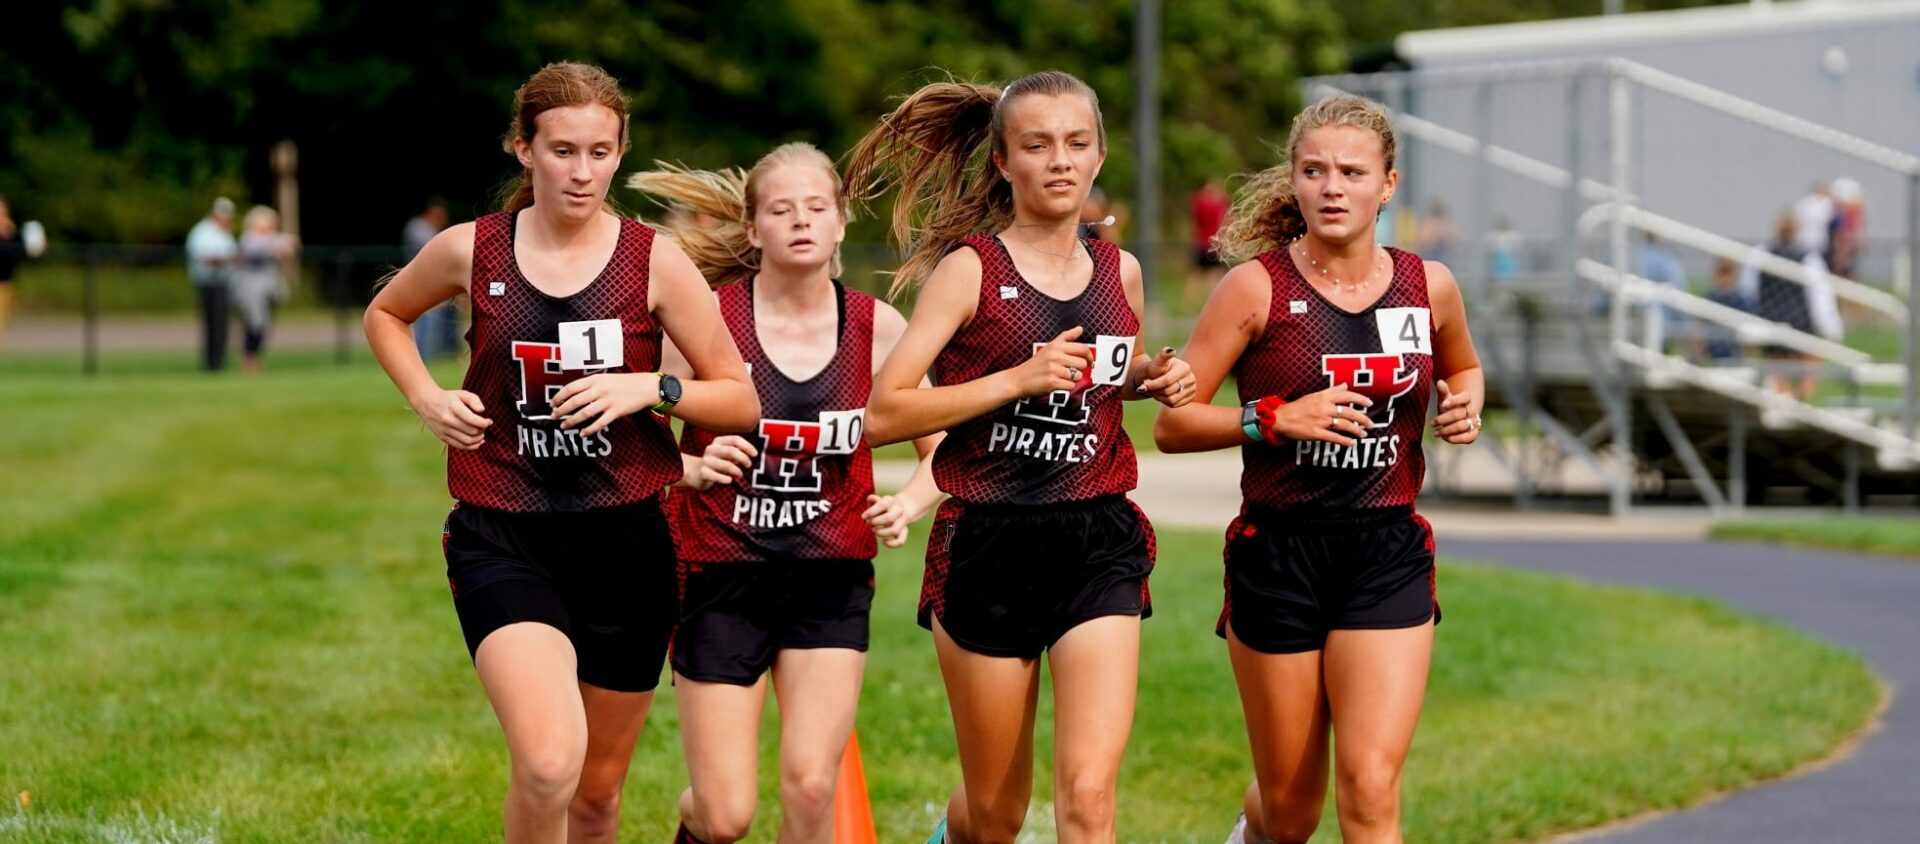 Hart Pirates, led by Enns and Ackley, sweep West Michigan Conference XC meet